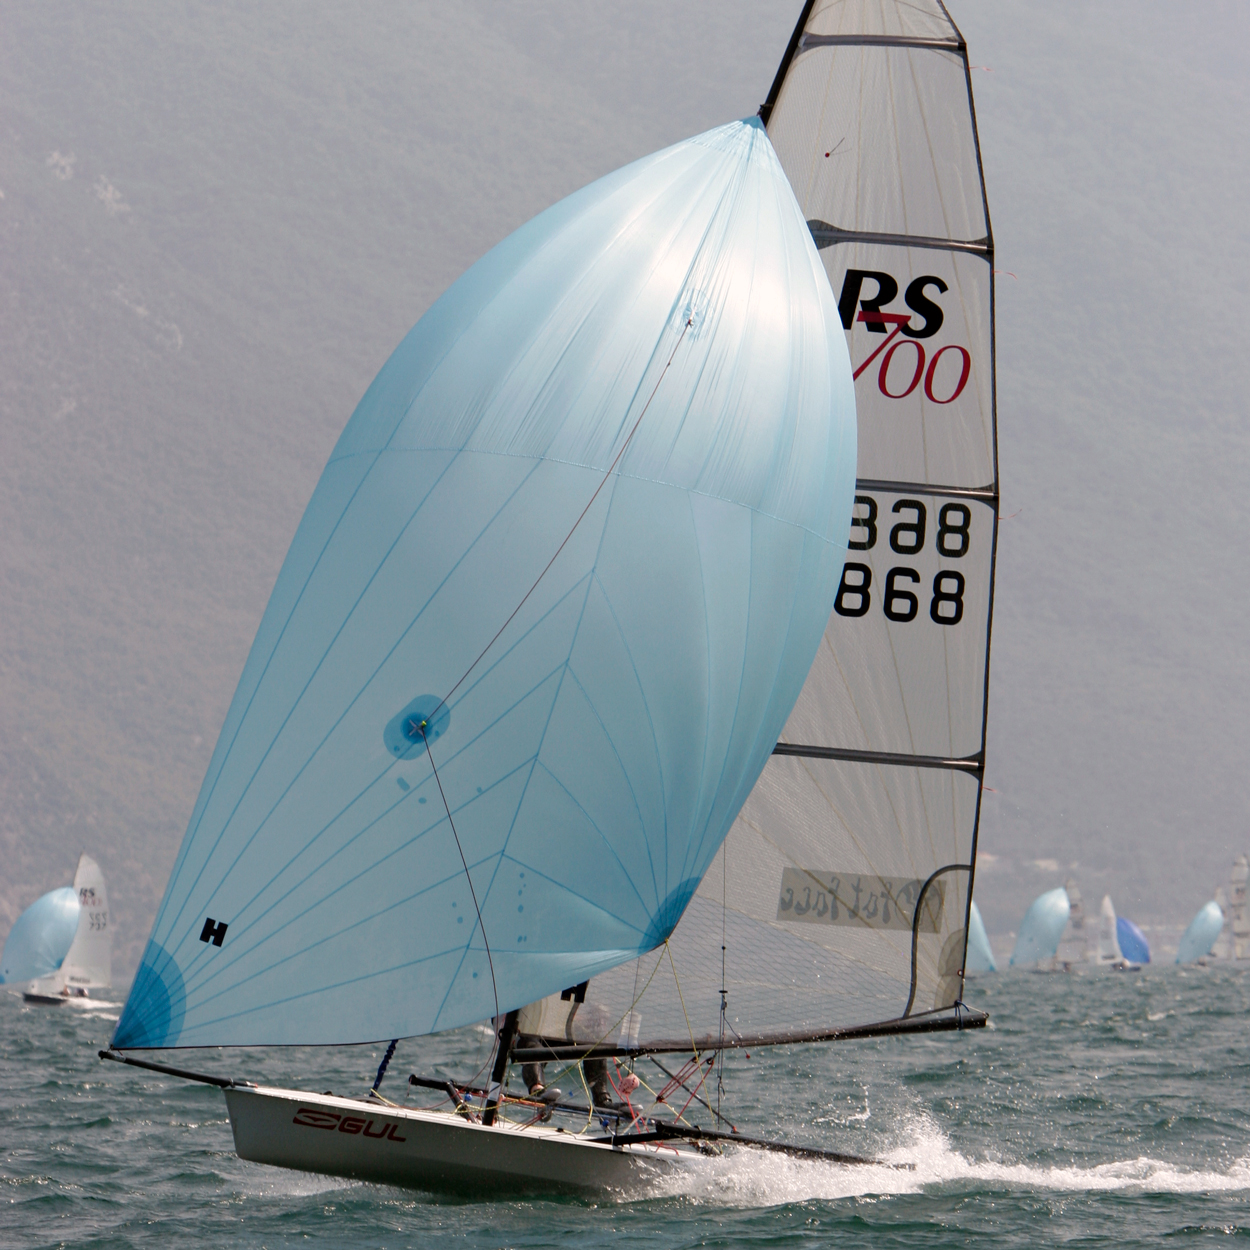 RS700 - Quick, exciting and user friendly Single Handed Skiff